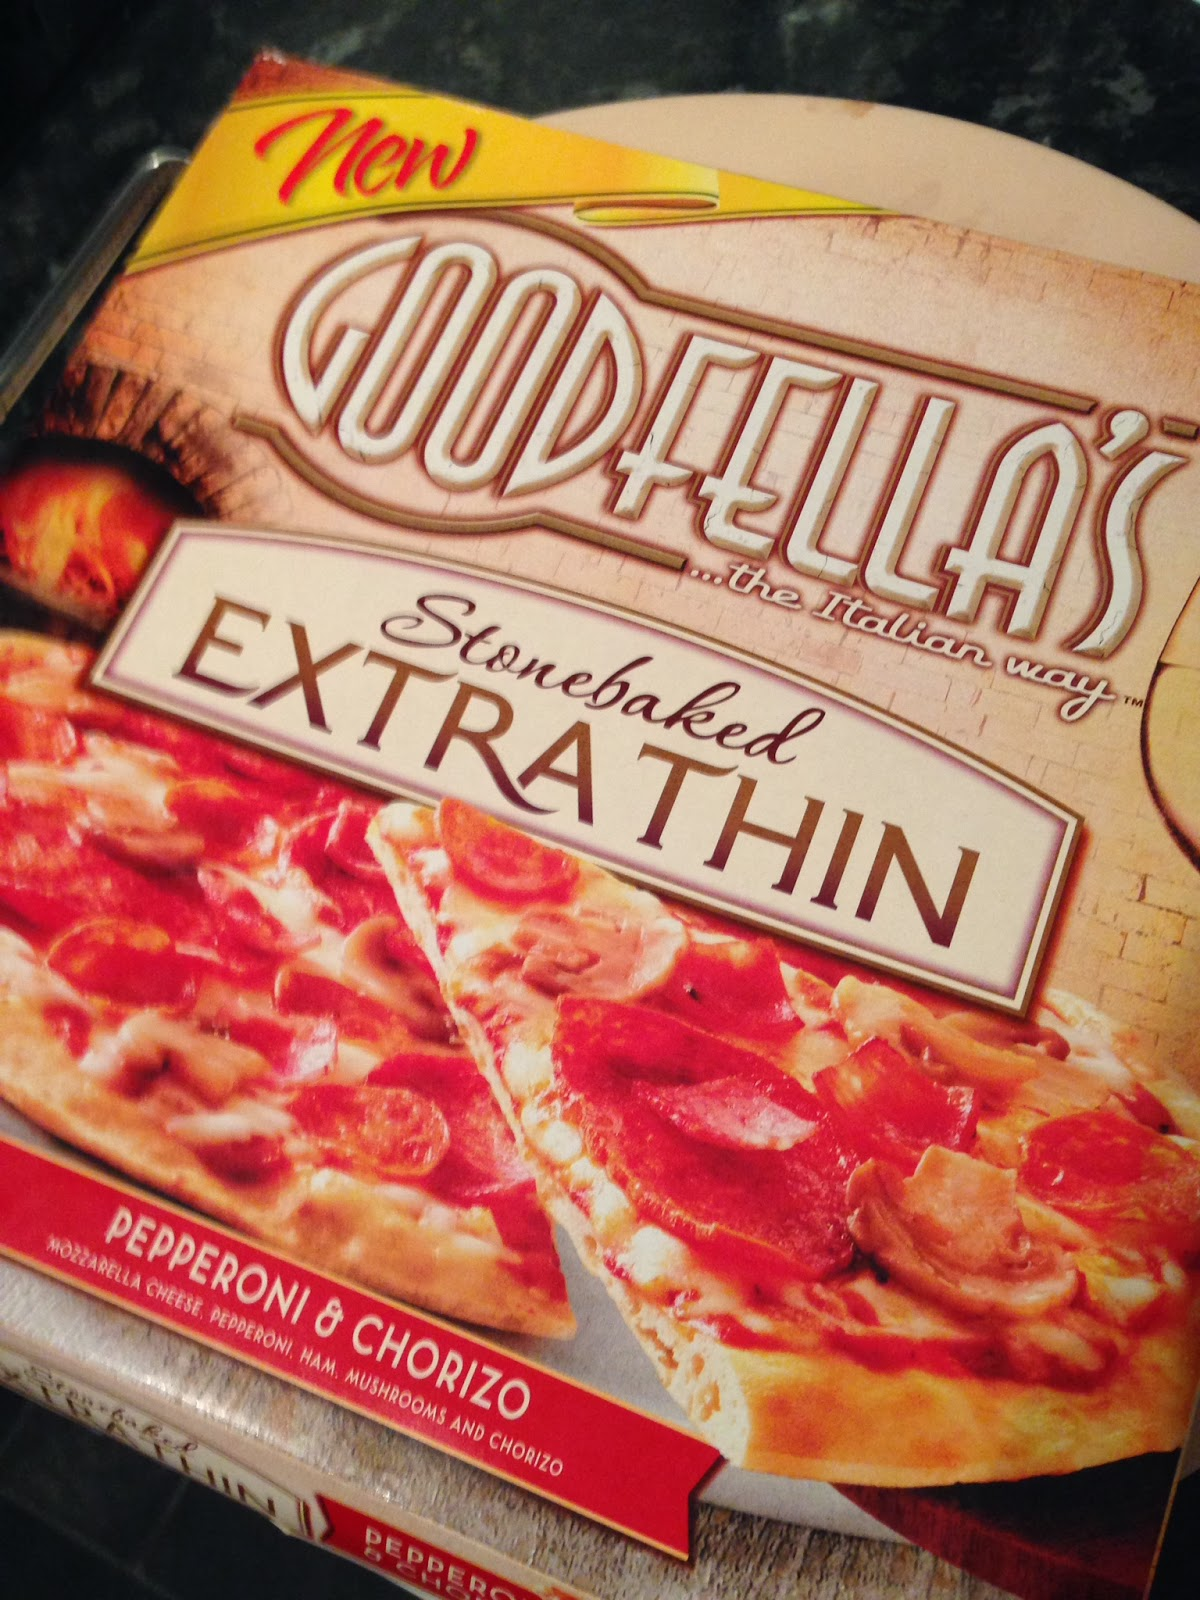 goodfellas exrtra thin pepperoni and chorizo pizza